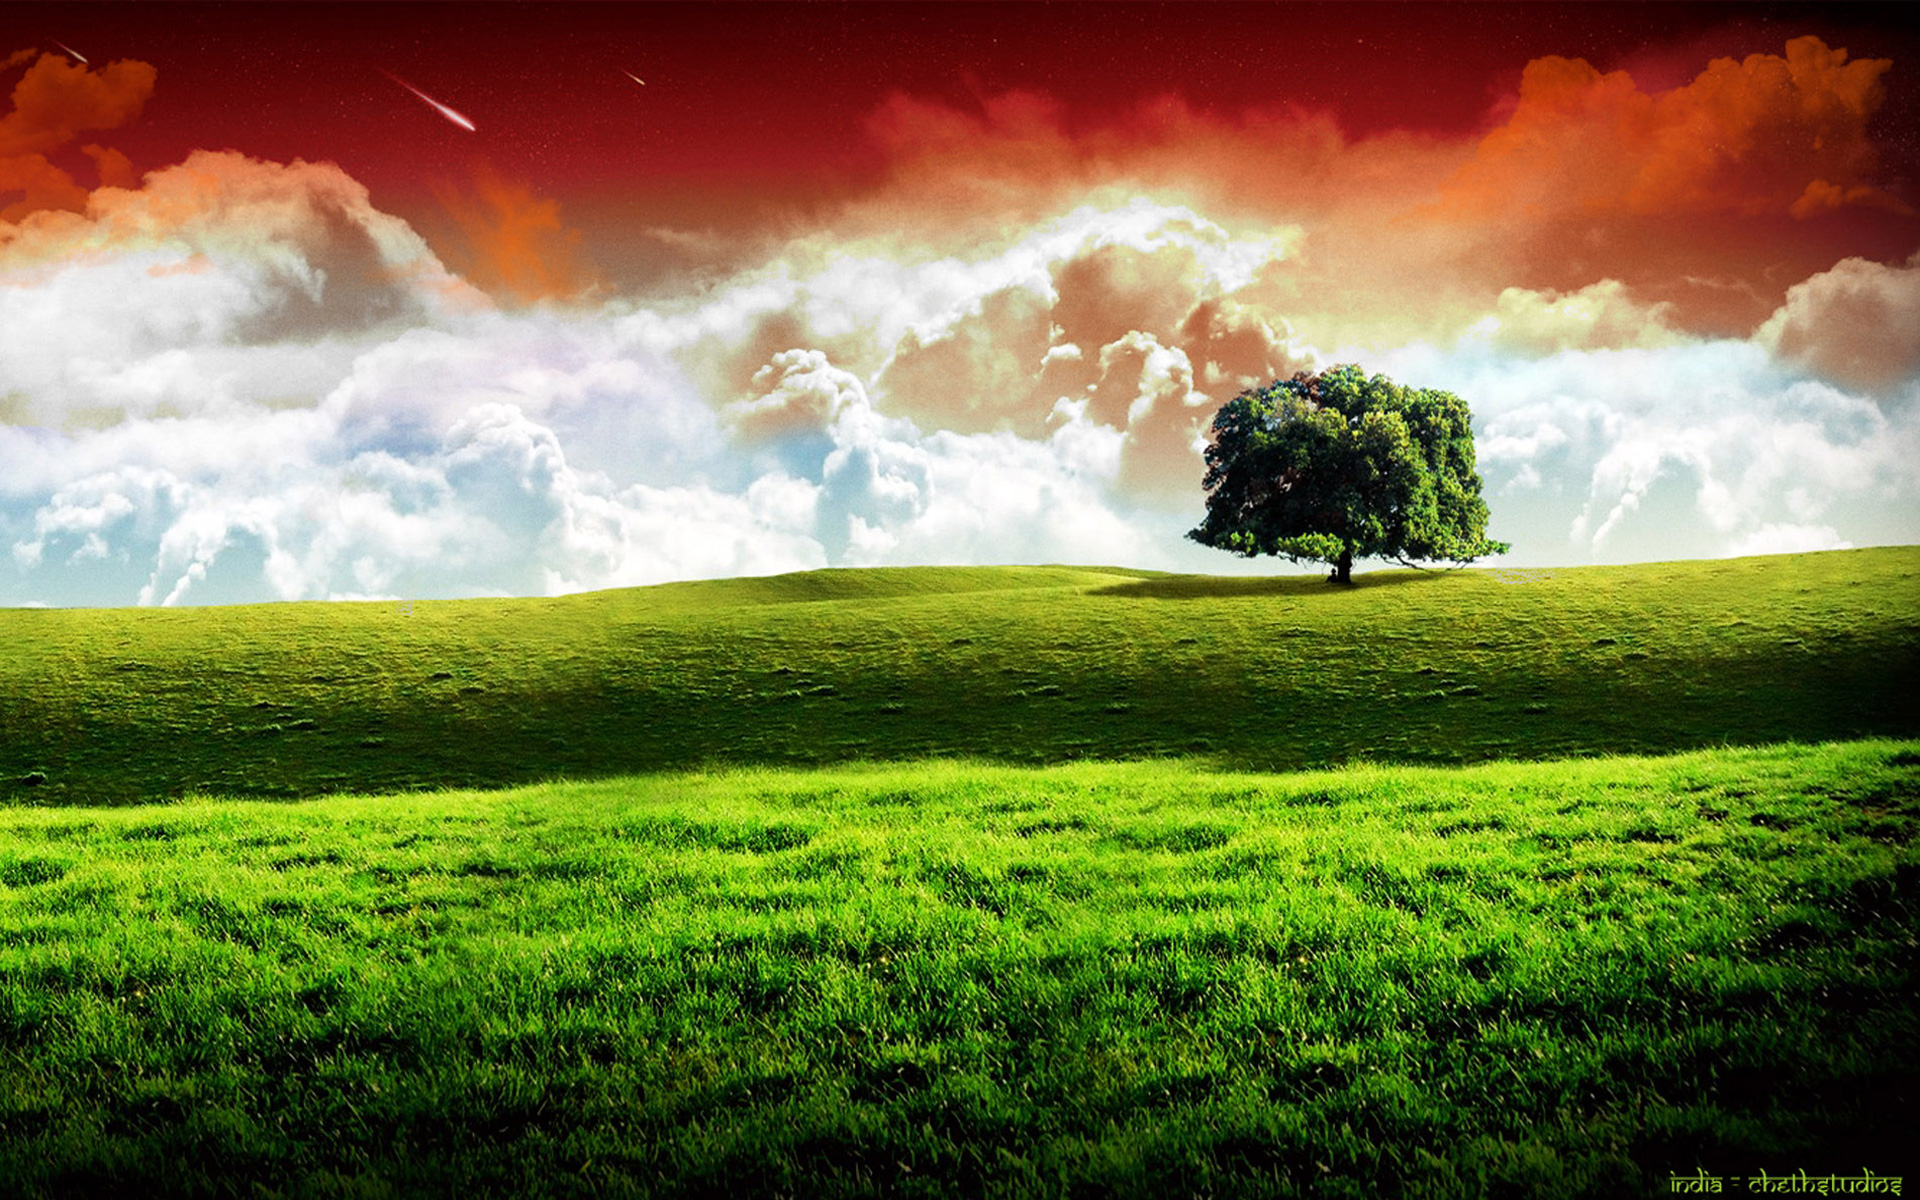 Hd Background Wallpaper 800x600: Hd Wallpaper Of India